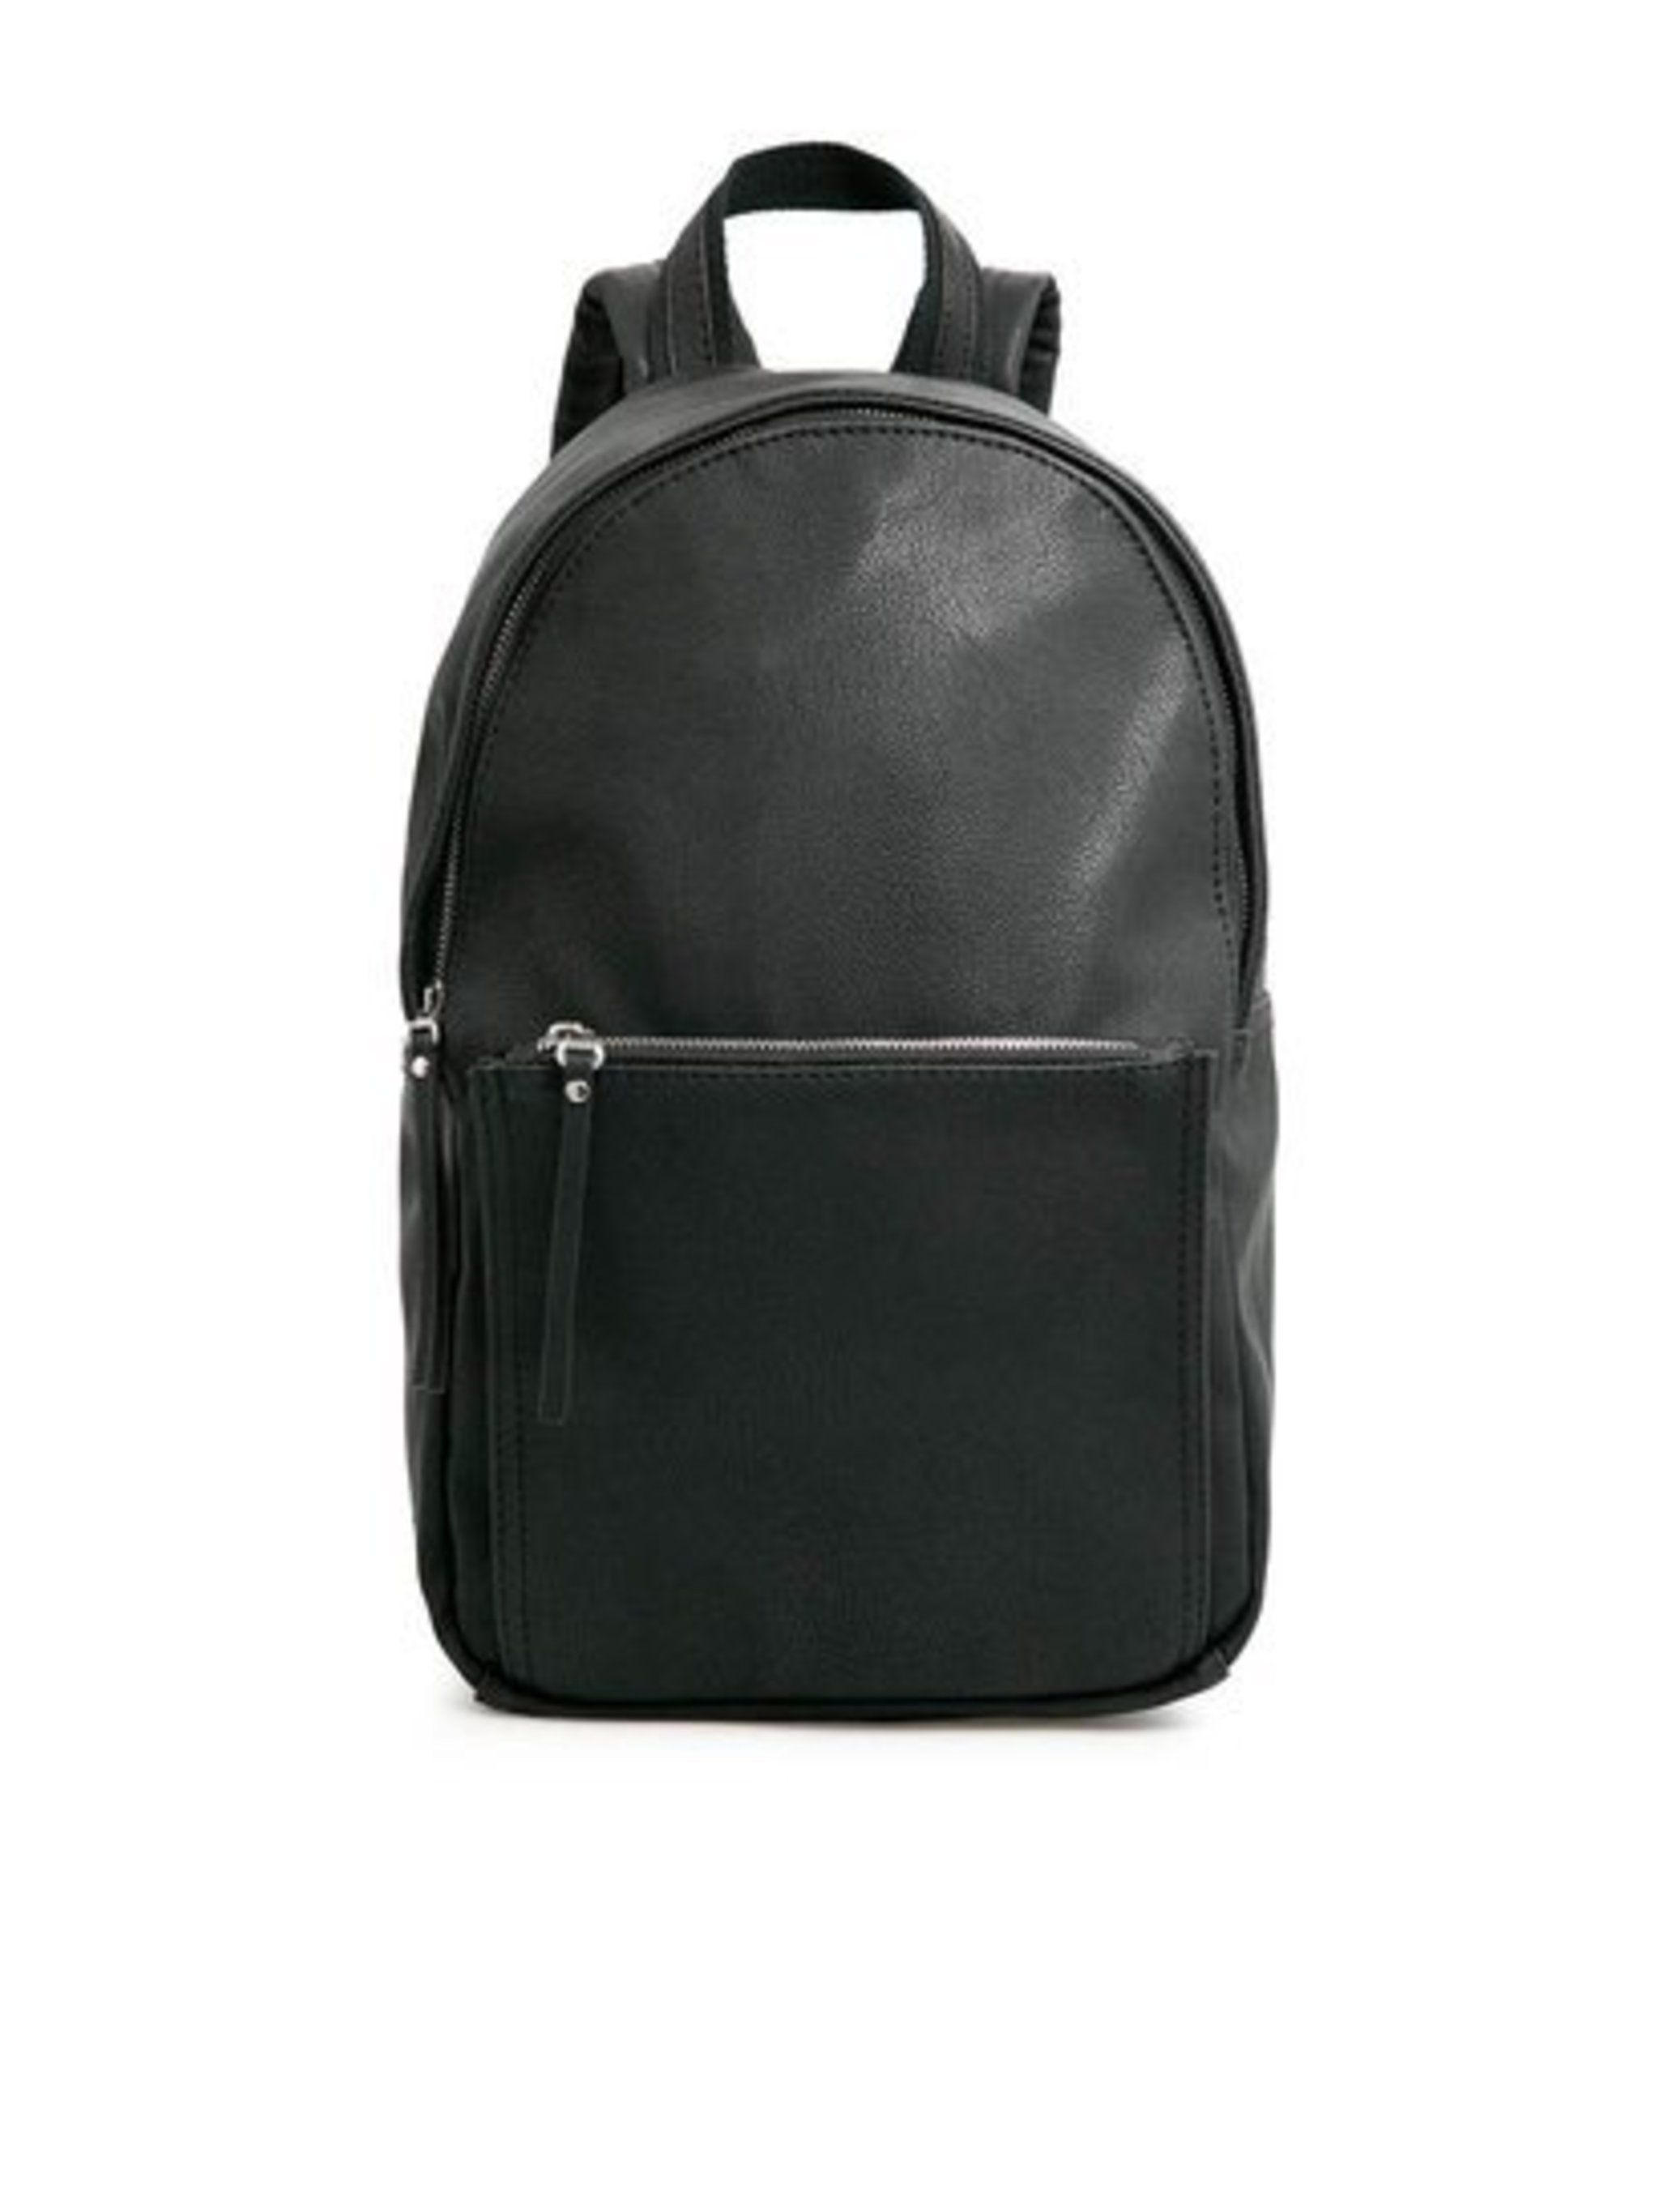 Practical Fashion. Backpack, £44.99 from Mango